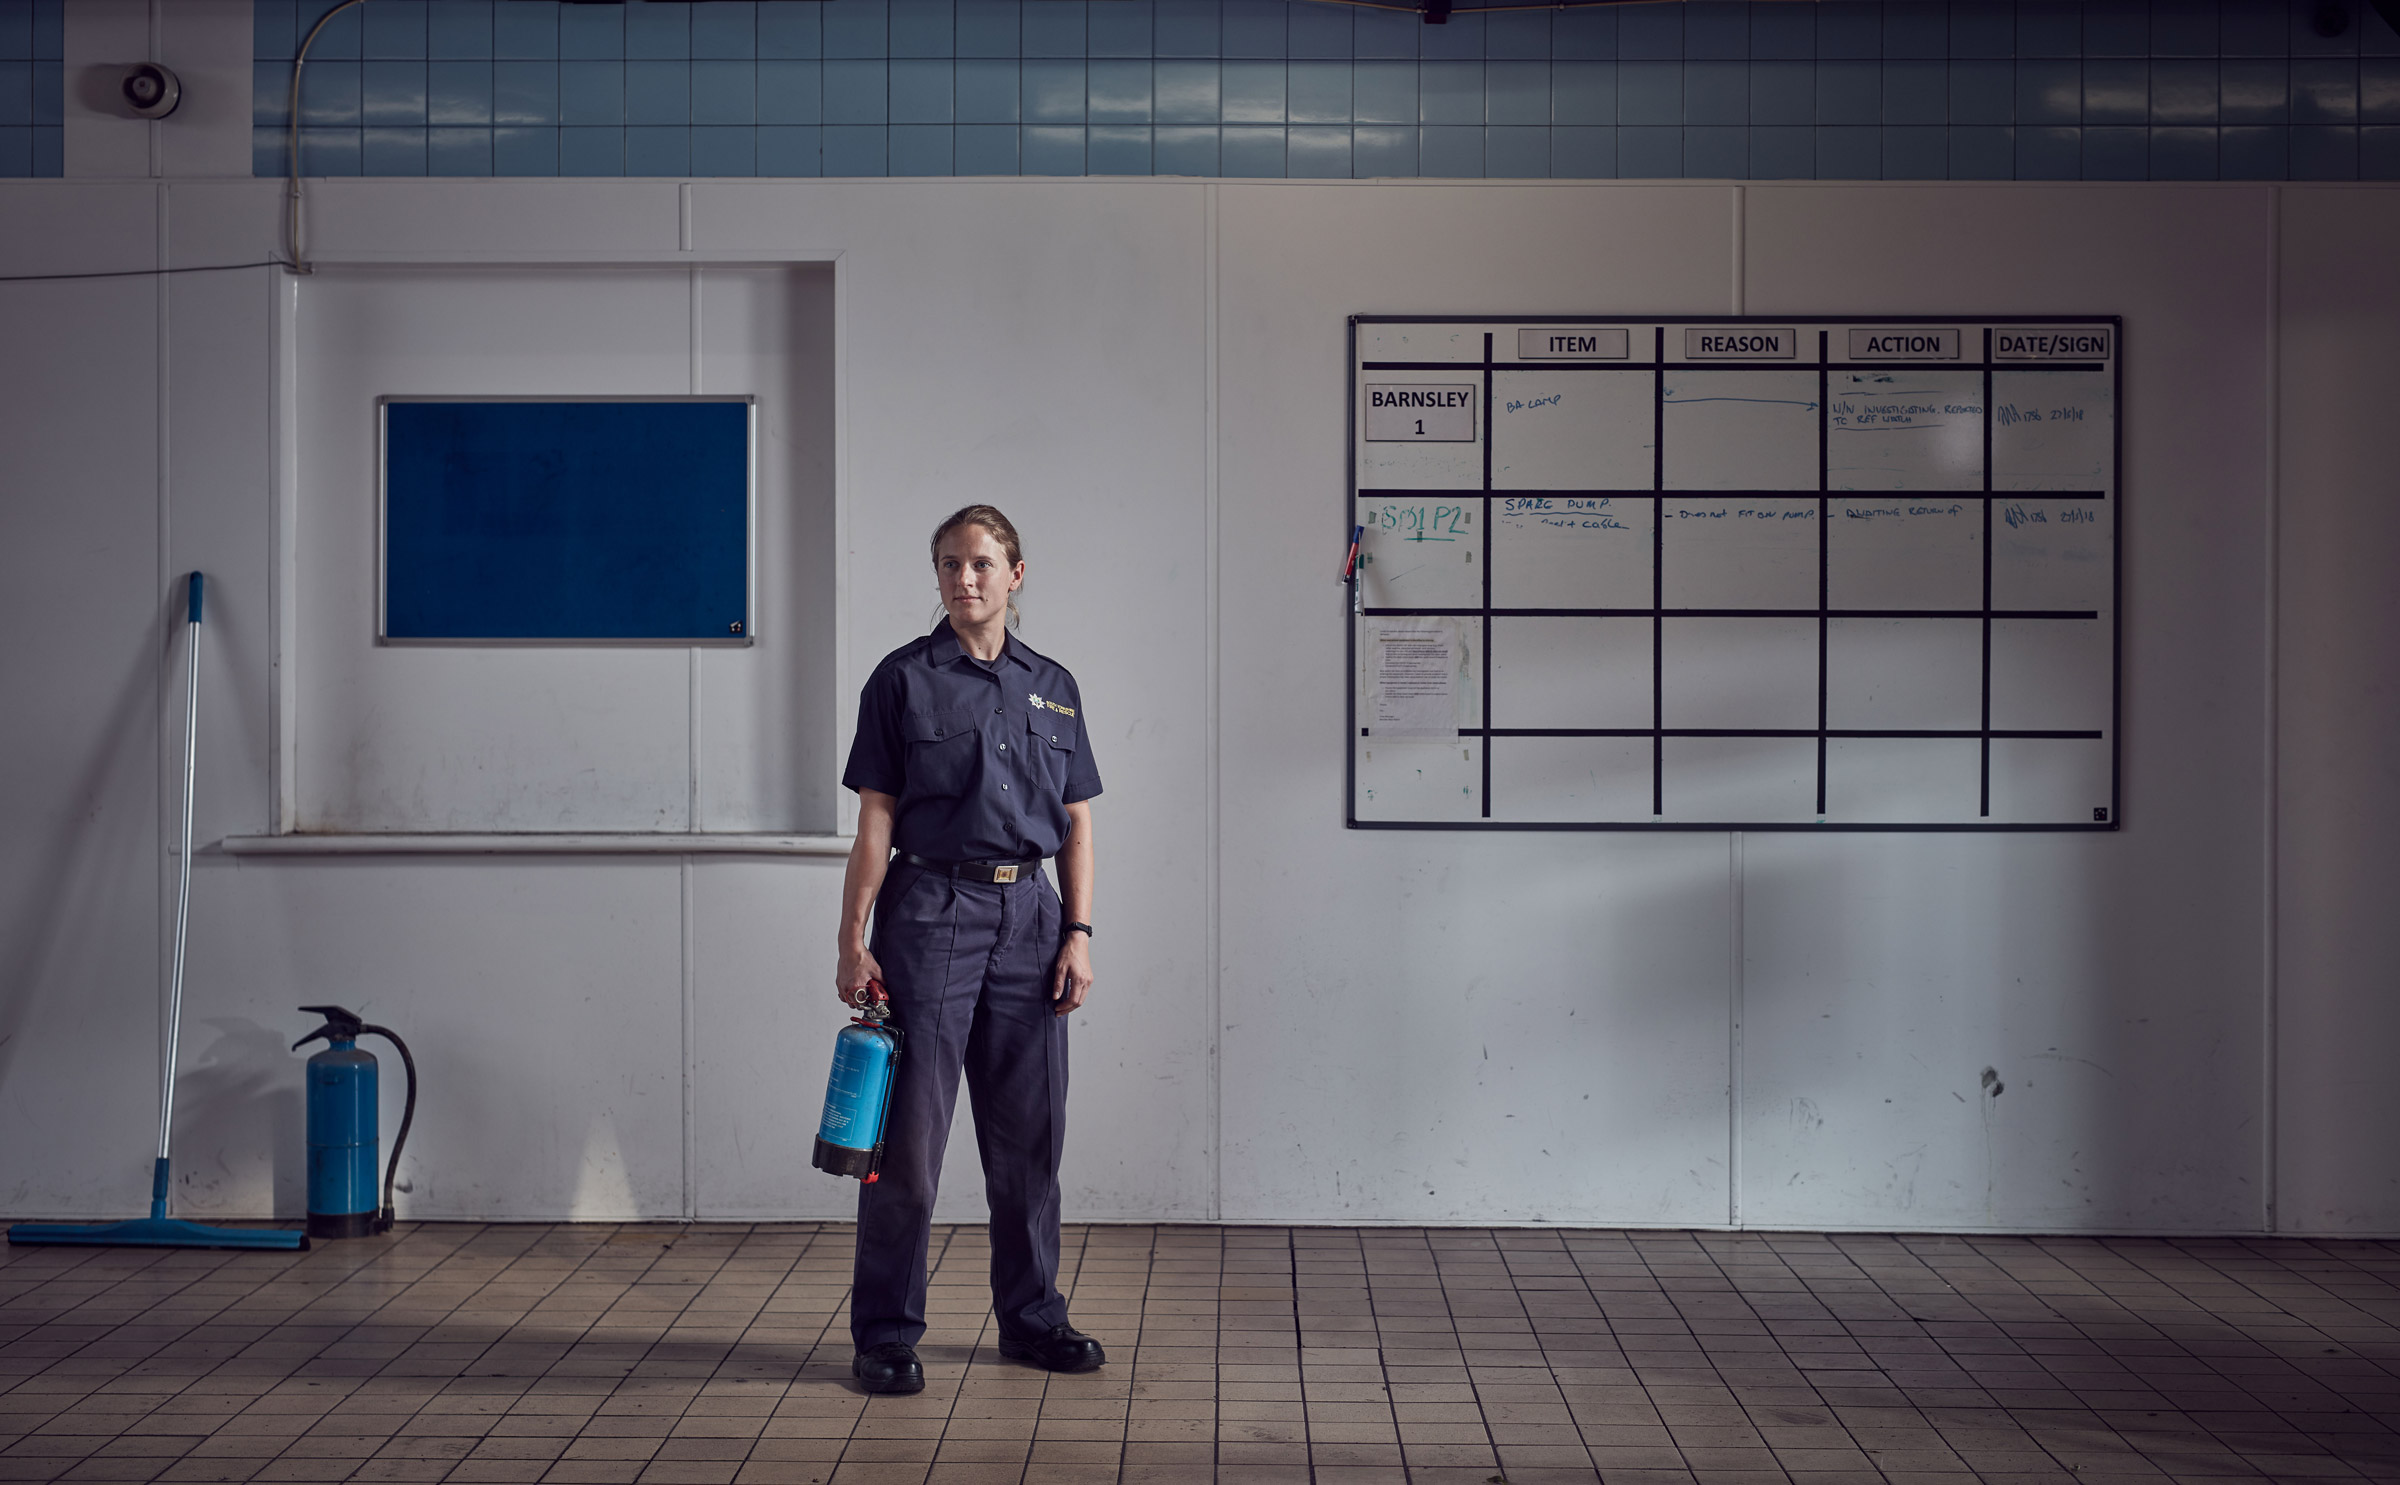 Female firefighter standing in traditional firestation folding extinguisher